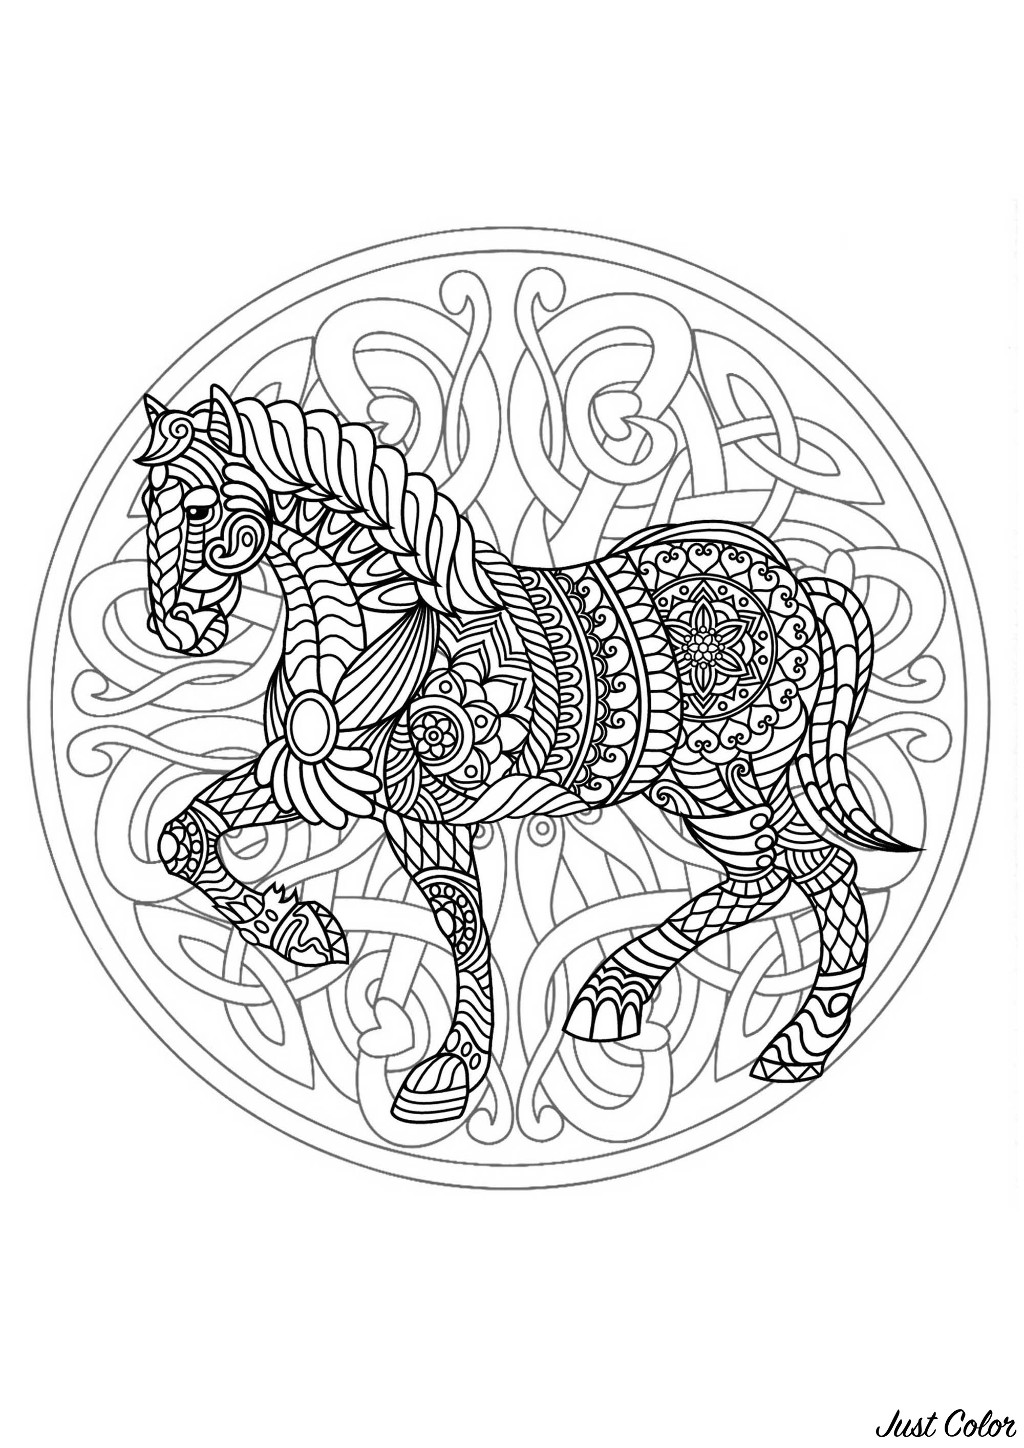 This horse is just waiting to be colored in this pretty original Mandala, it's up to you to print it and let your artistic sense guide you.